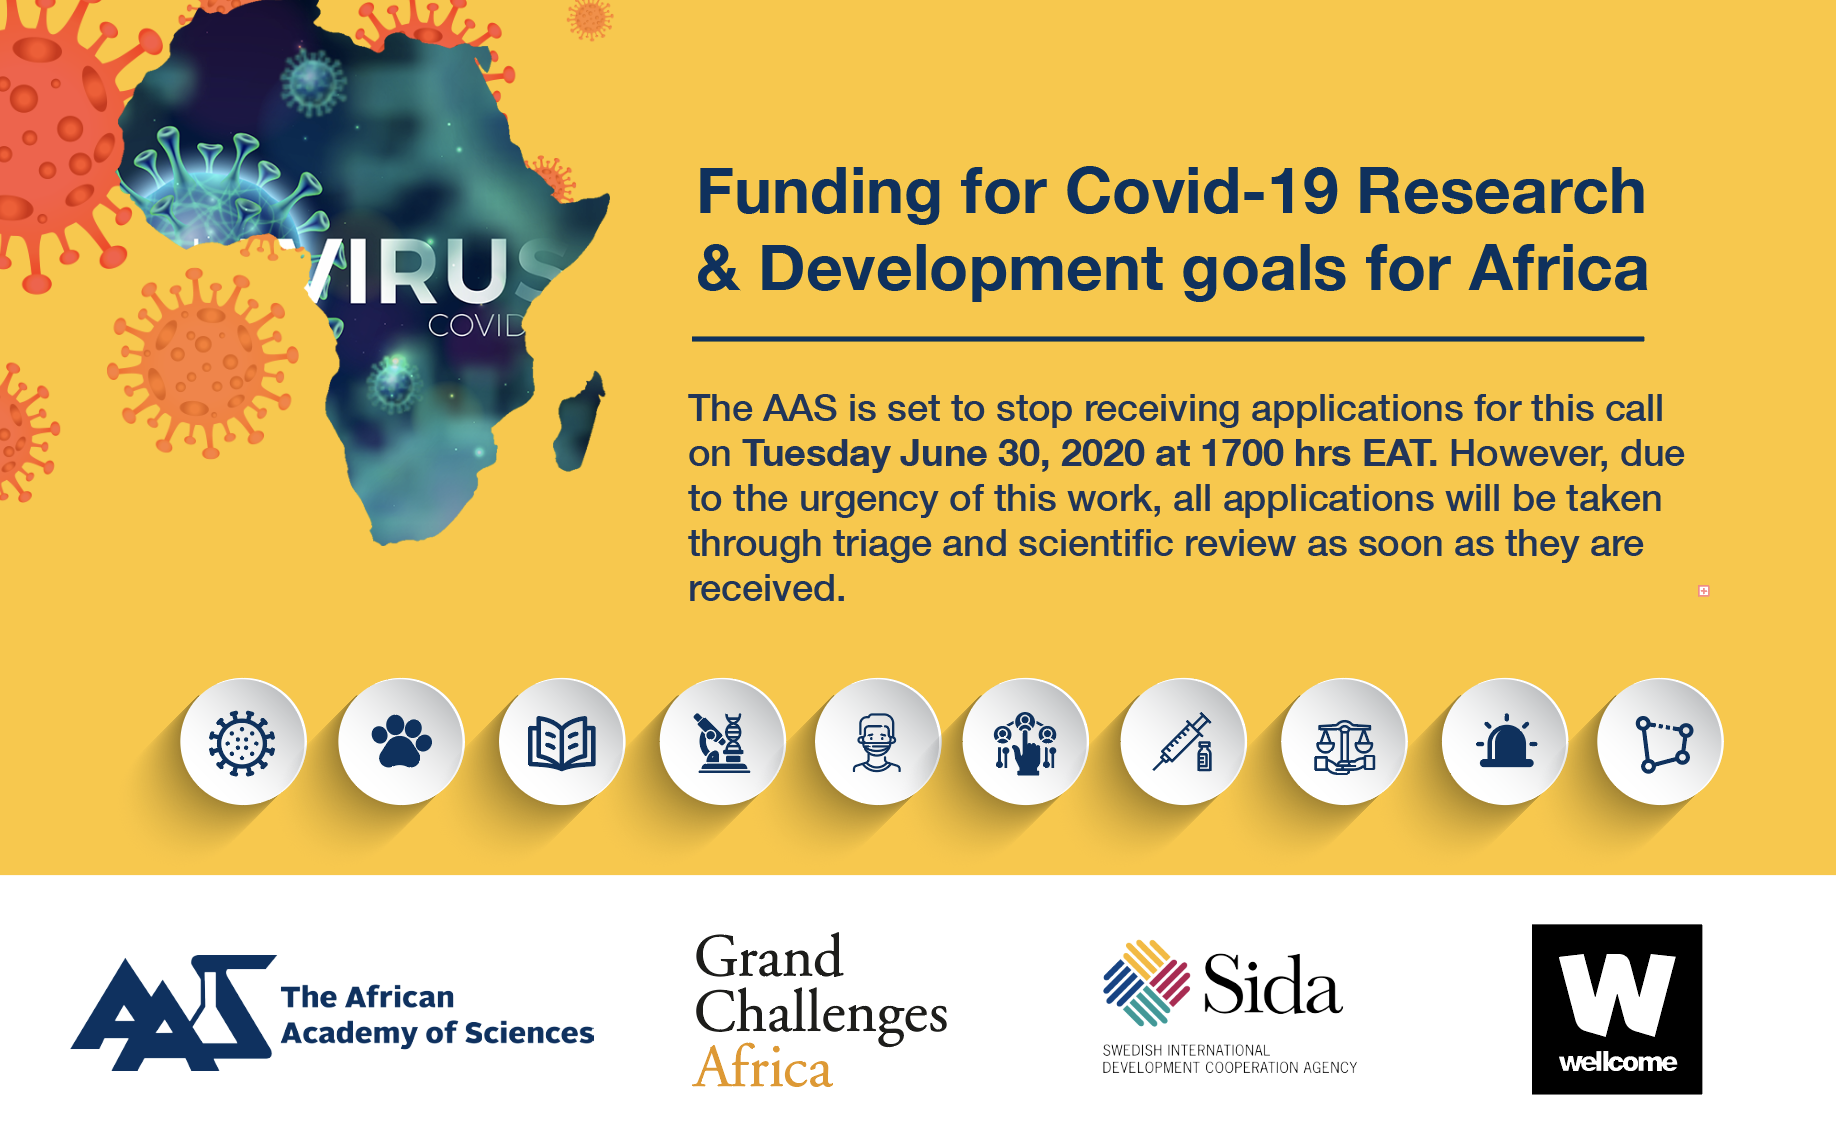 AAS Funding for Covid-19 Research & Development Goals for Africa